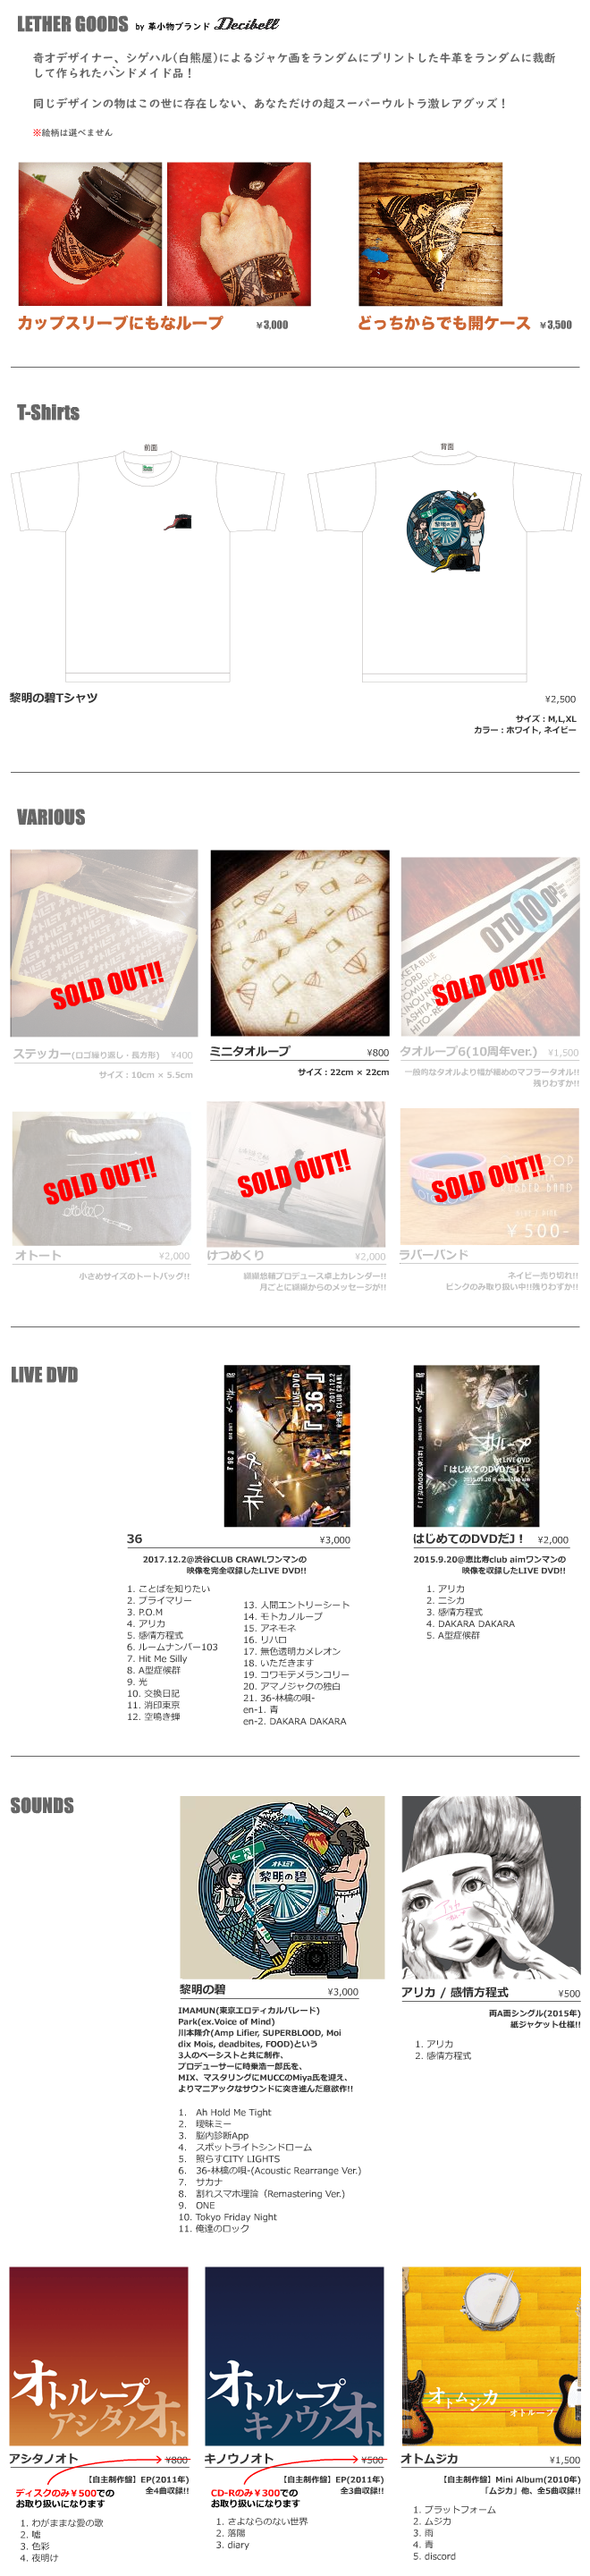 goods_210612.png